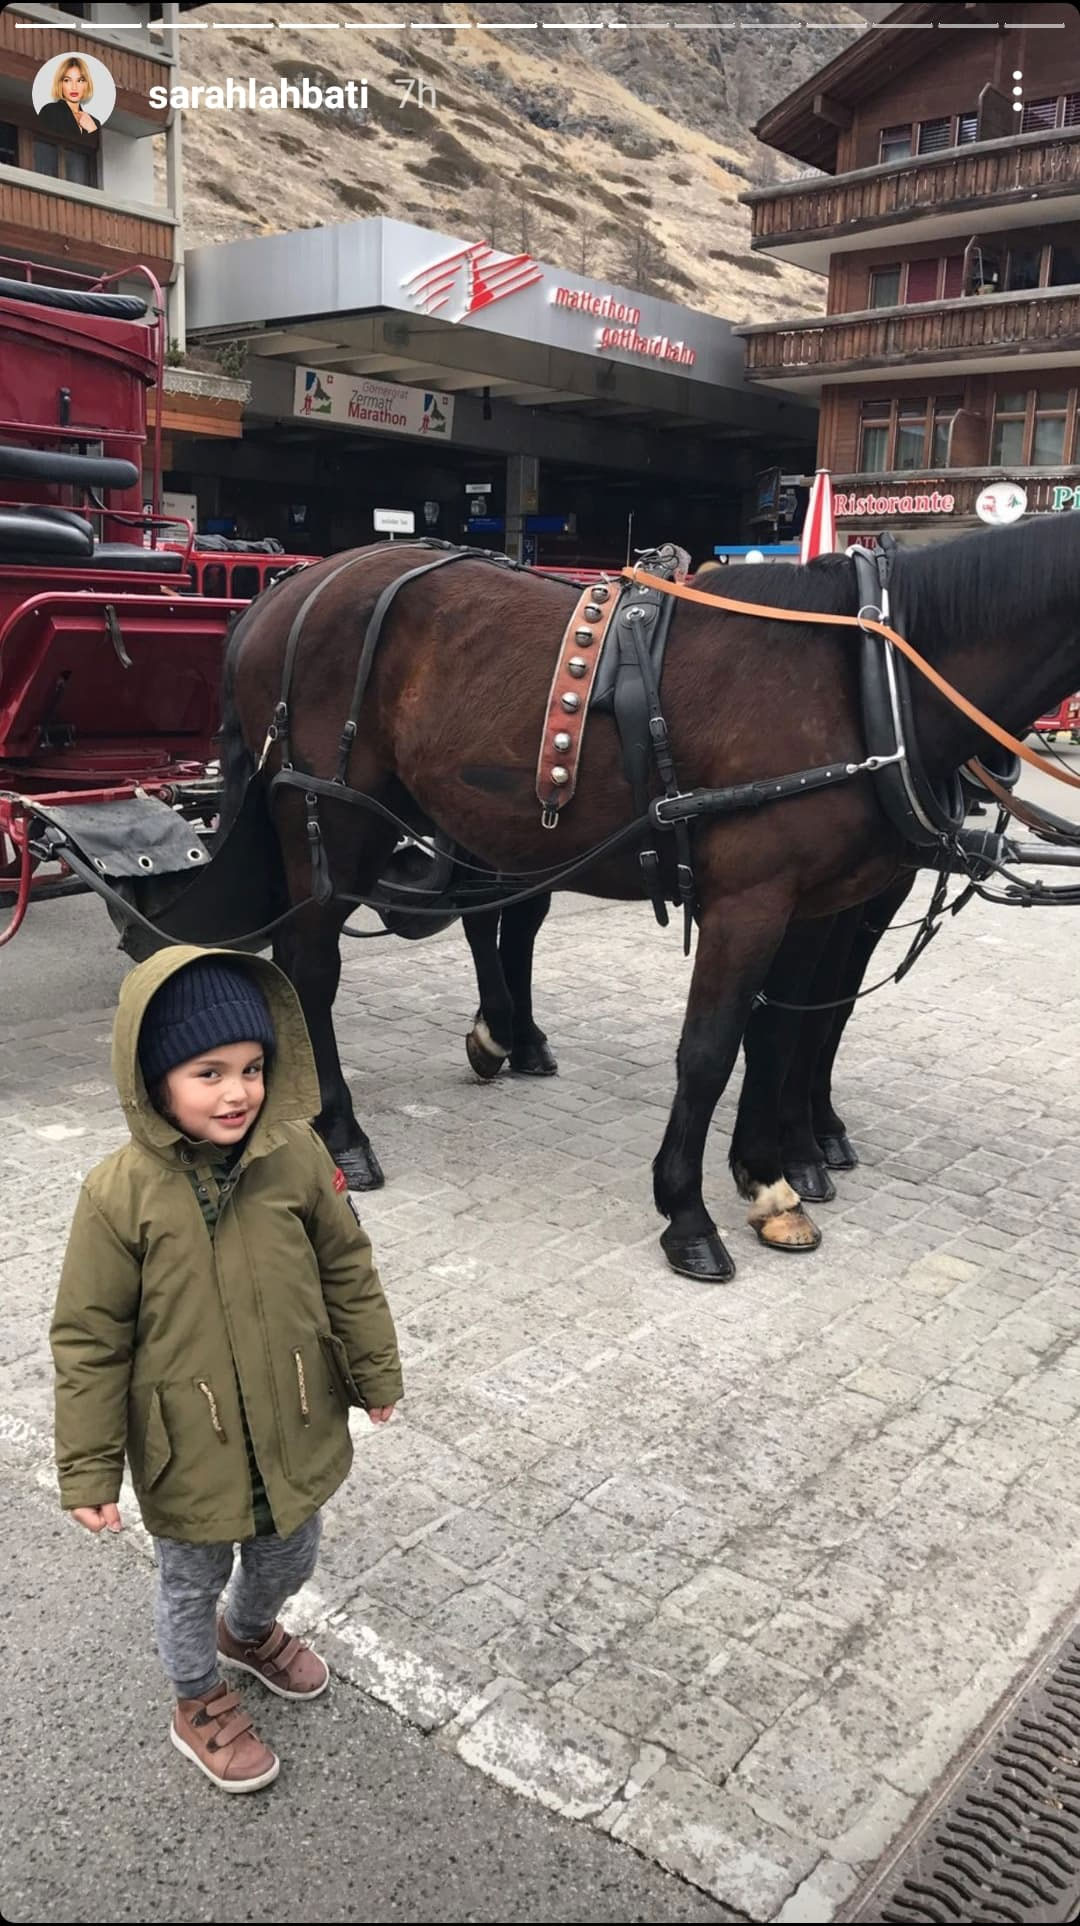 Zion posing with a horse